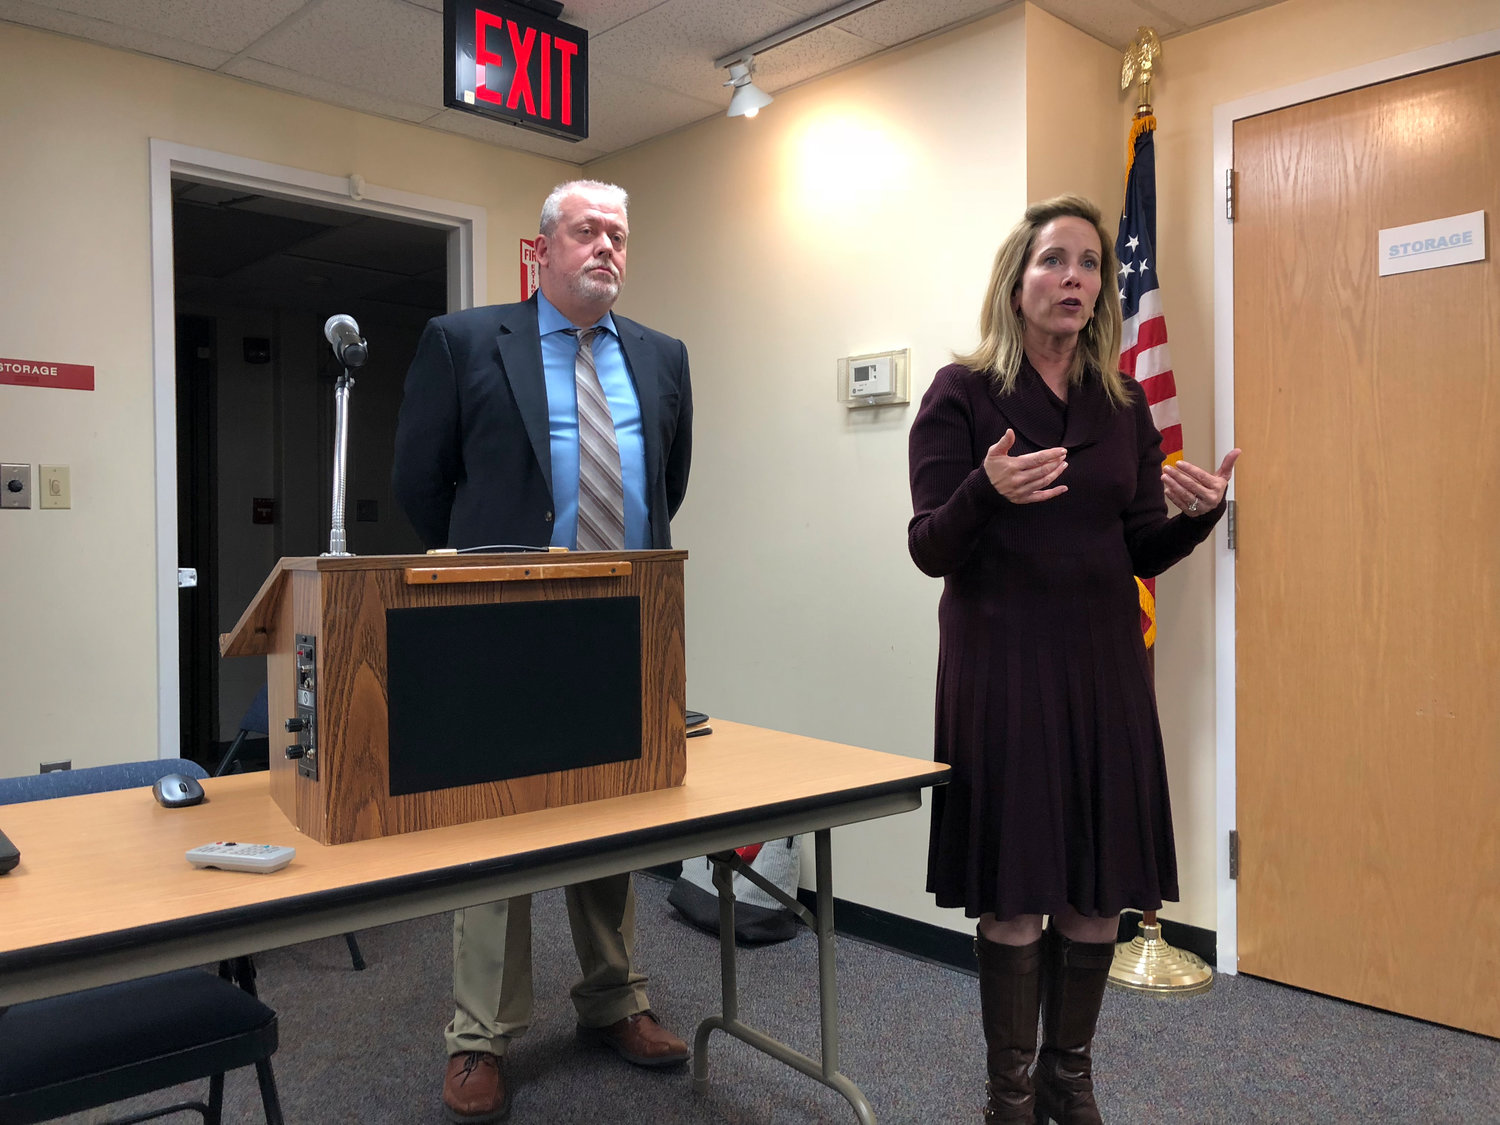 Town of Hempstead Supervisor Laura Gillen and her chief of staff, Jim LaCarrubba, addressed concerns about the condition of Rath Park, and said they would push for improvements in security and maintenance.